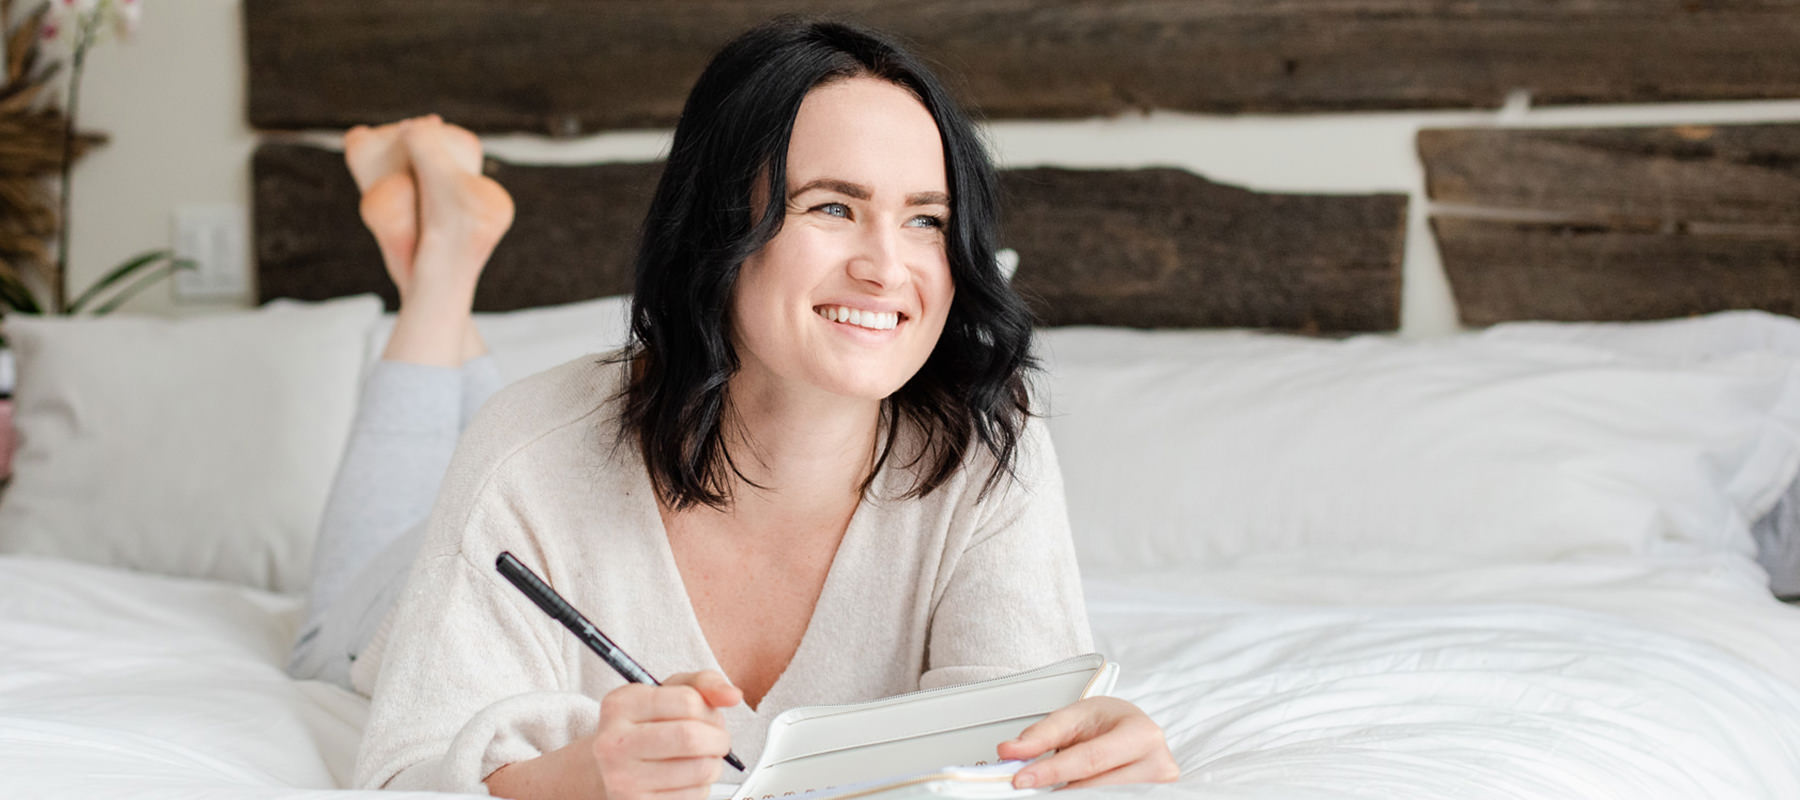 Woman lying on white bed spread writing in her journal.